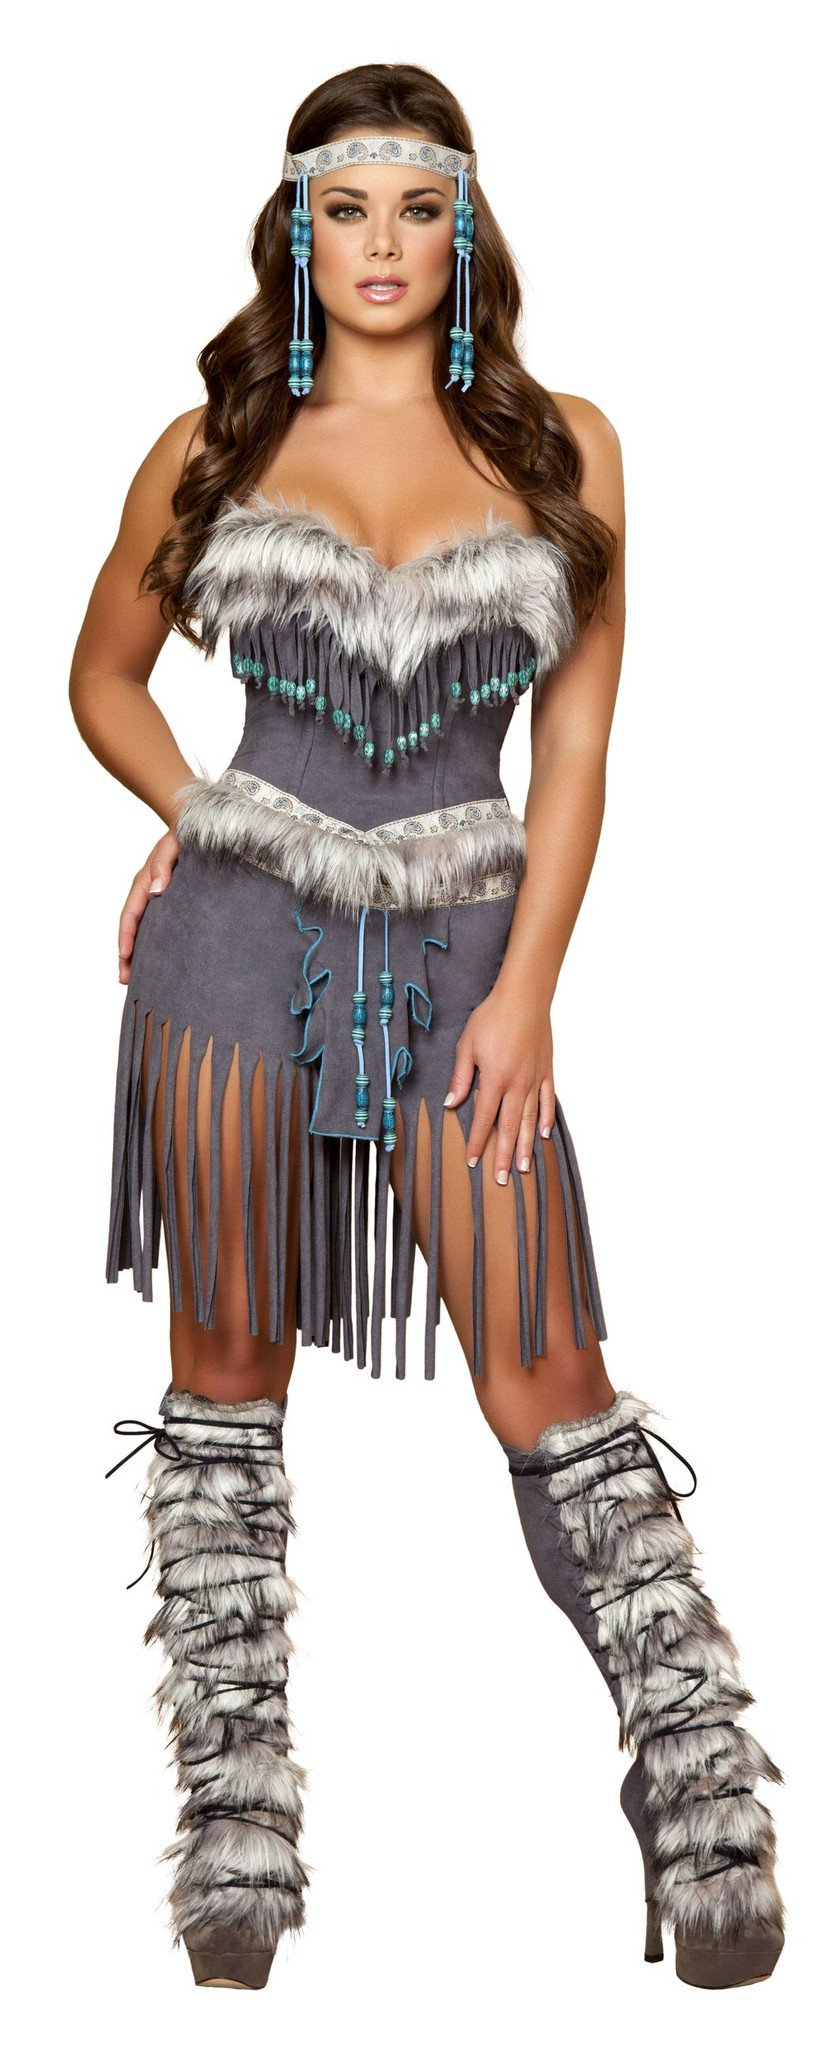 4428 - 3pc Indian Hottie - PlaythingsMiami